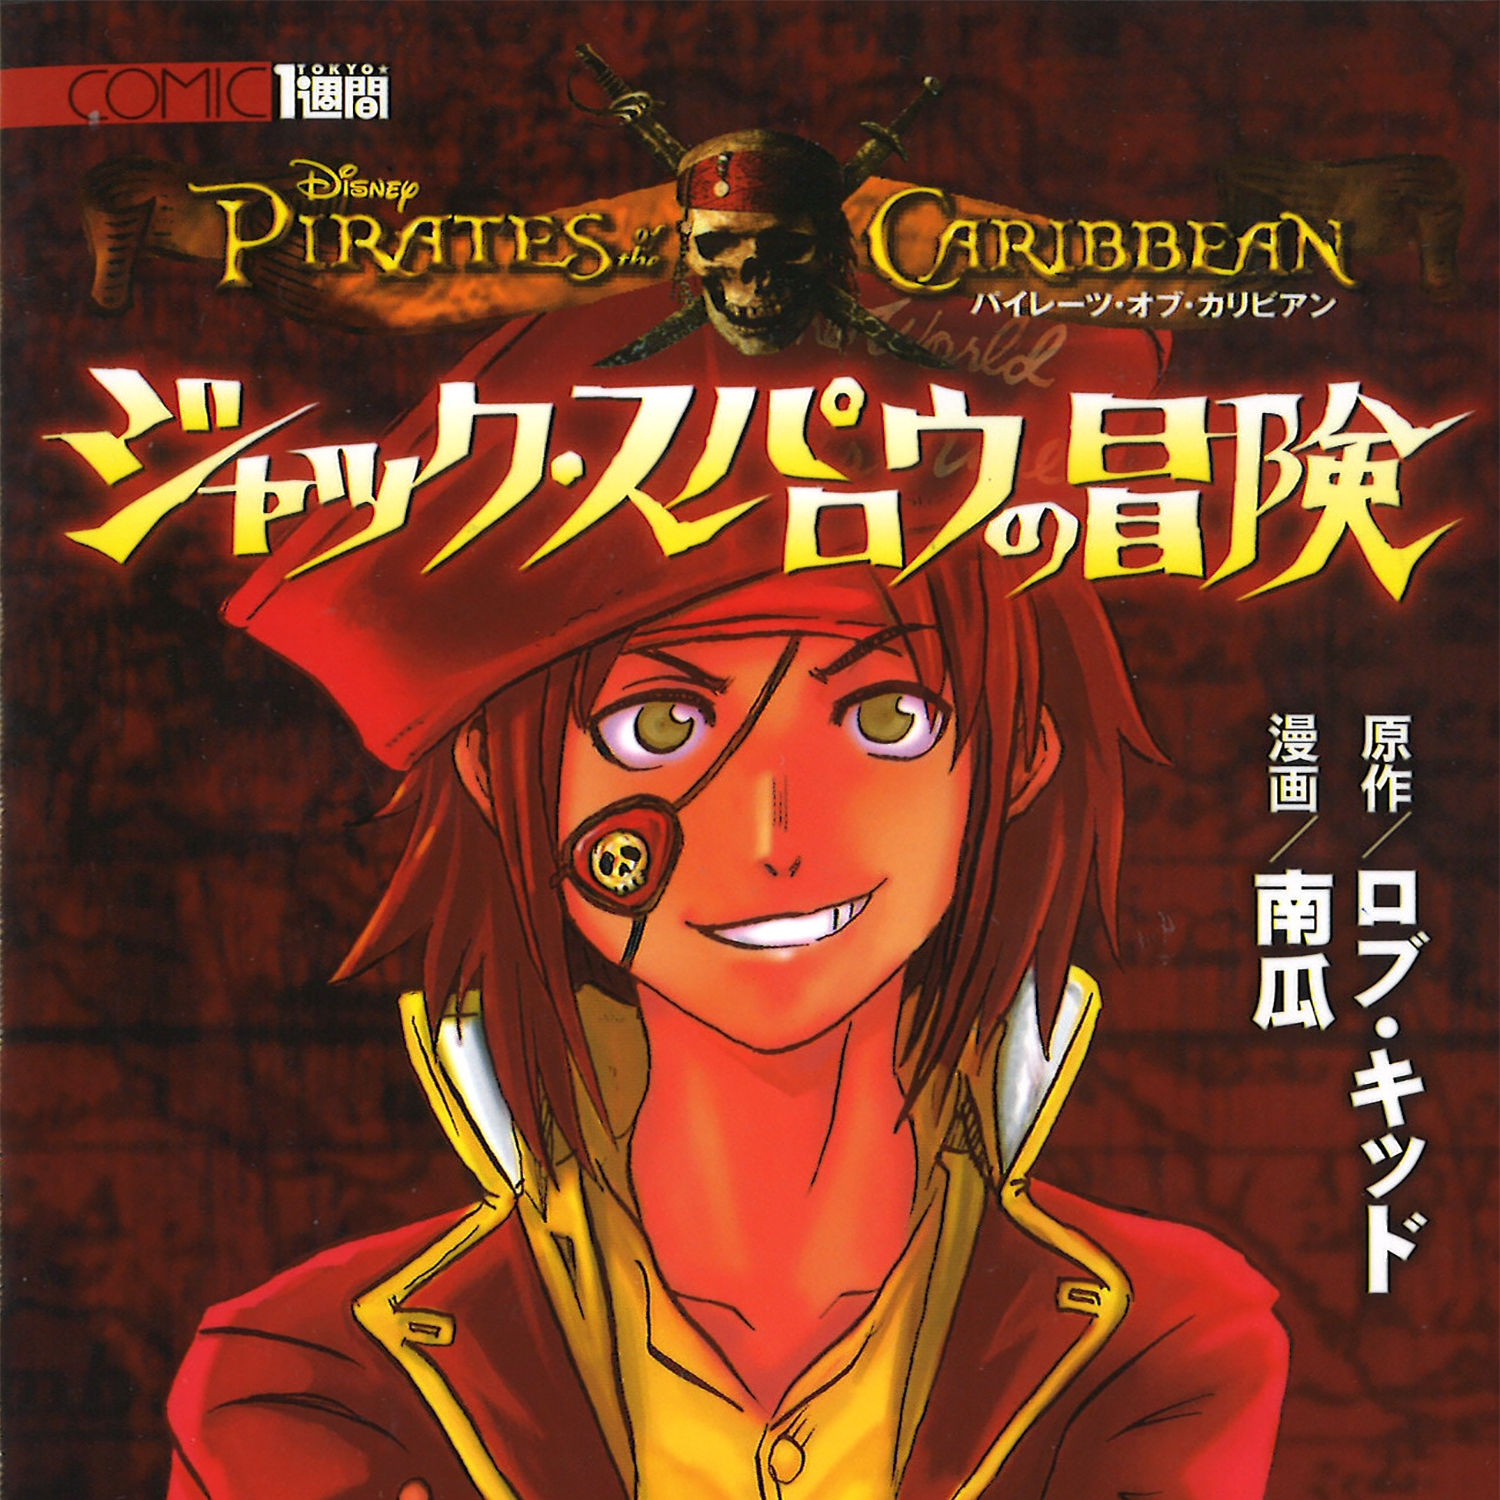 Jack Sparrow's Early Adventures Delineated As Manga